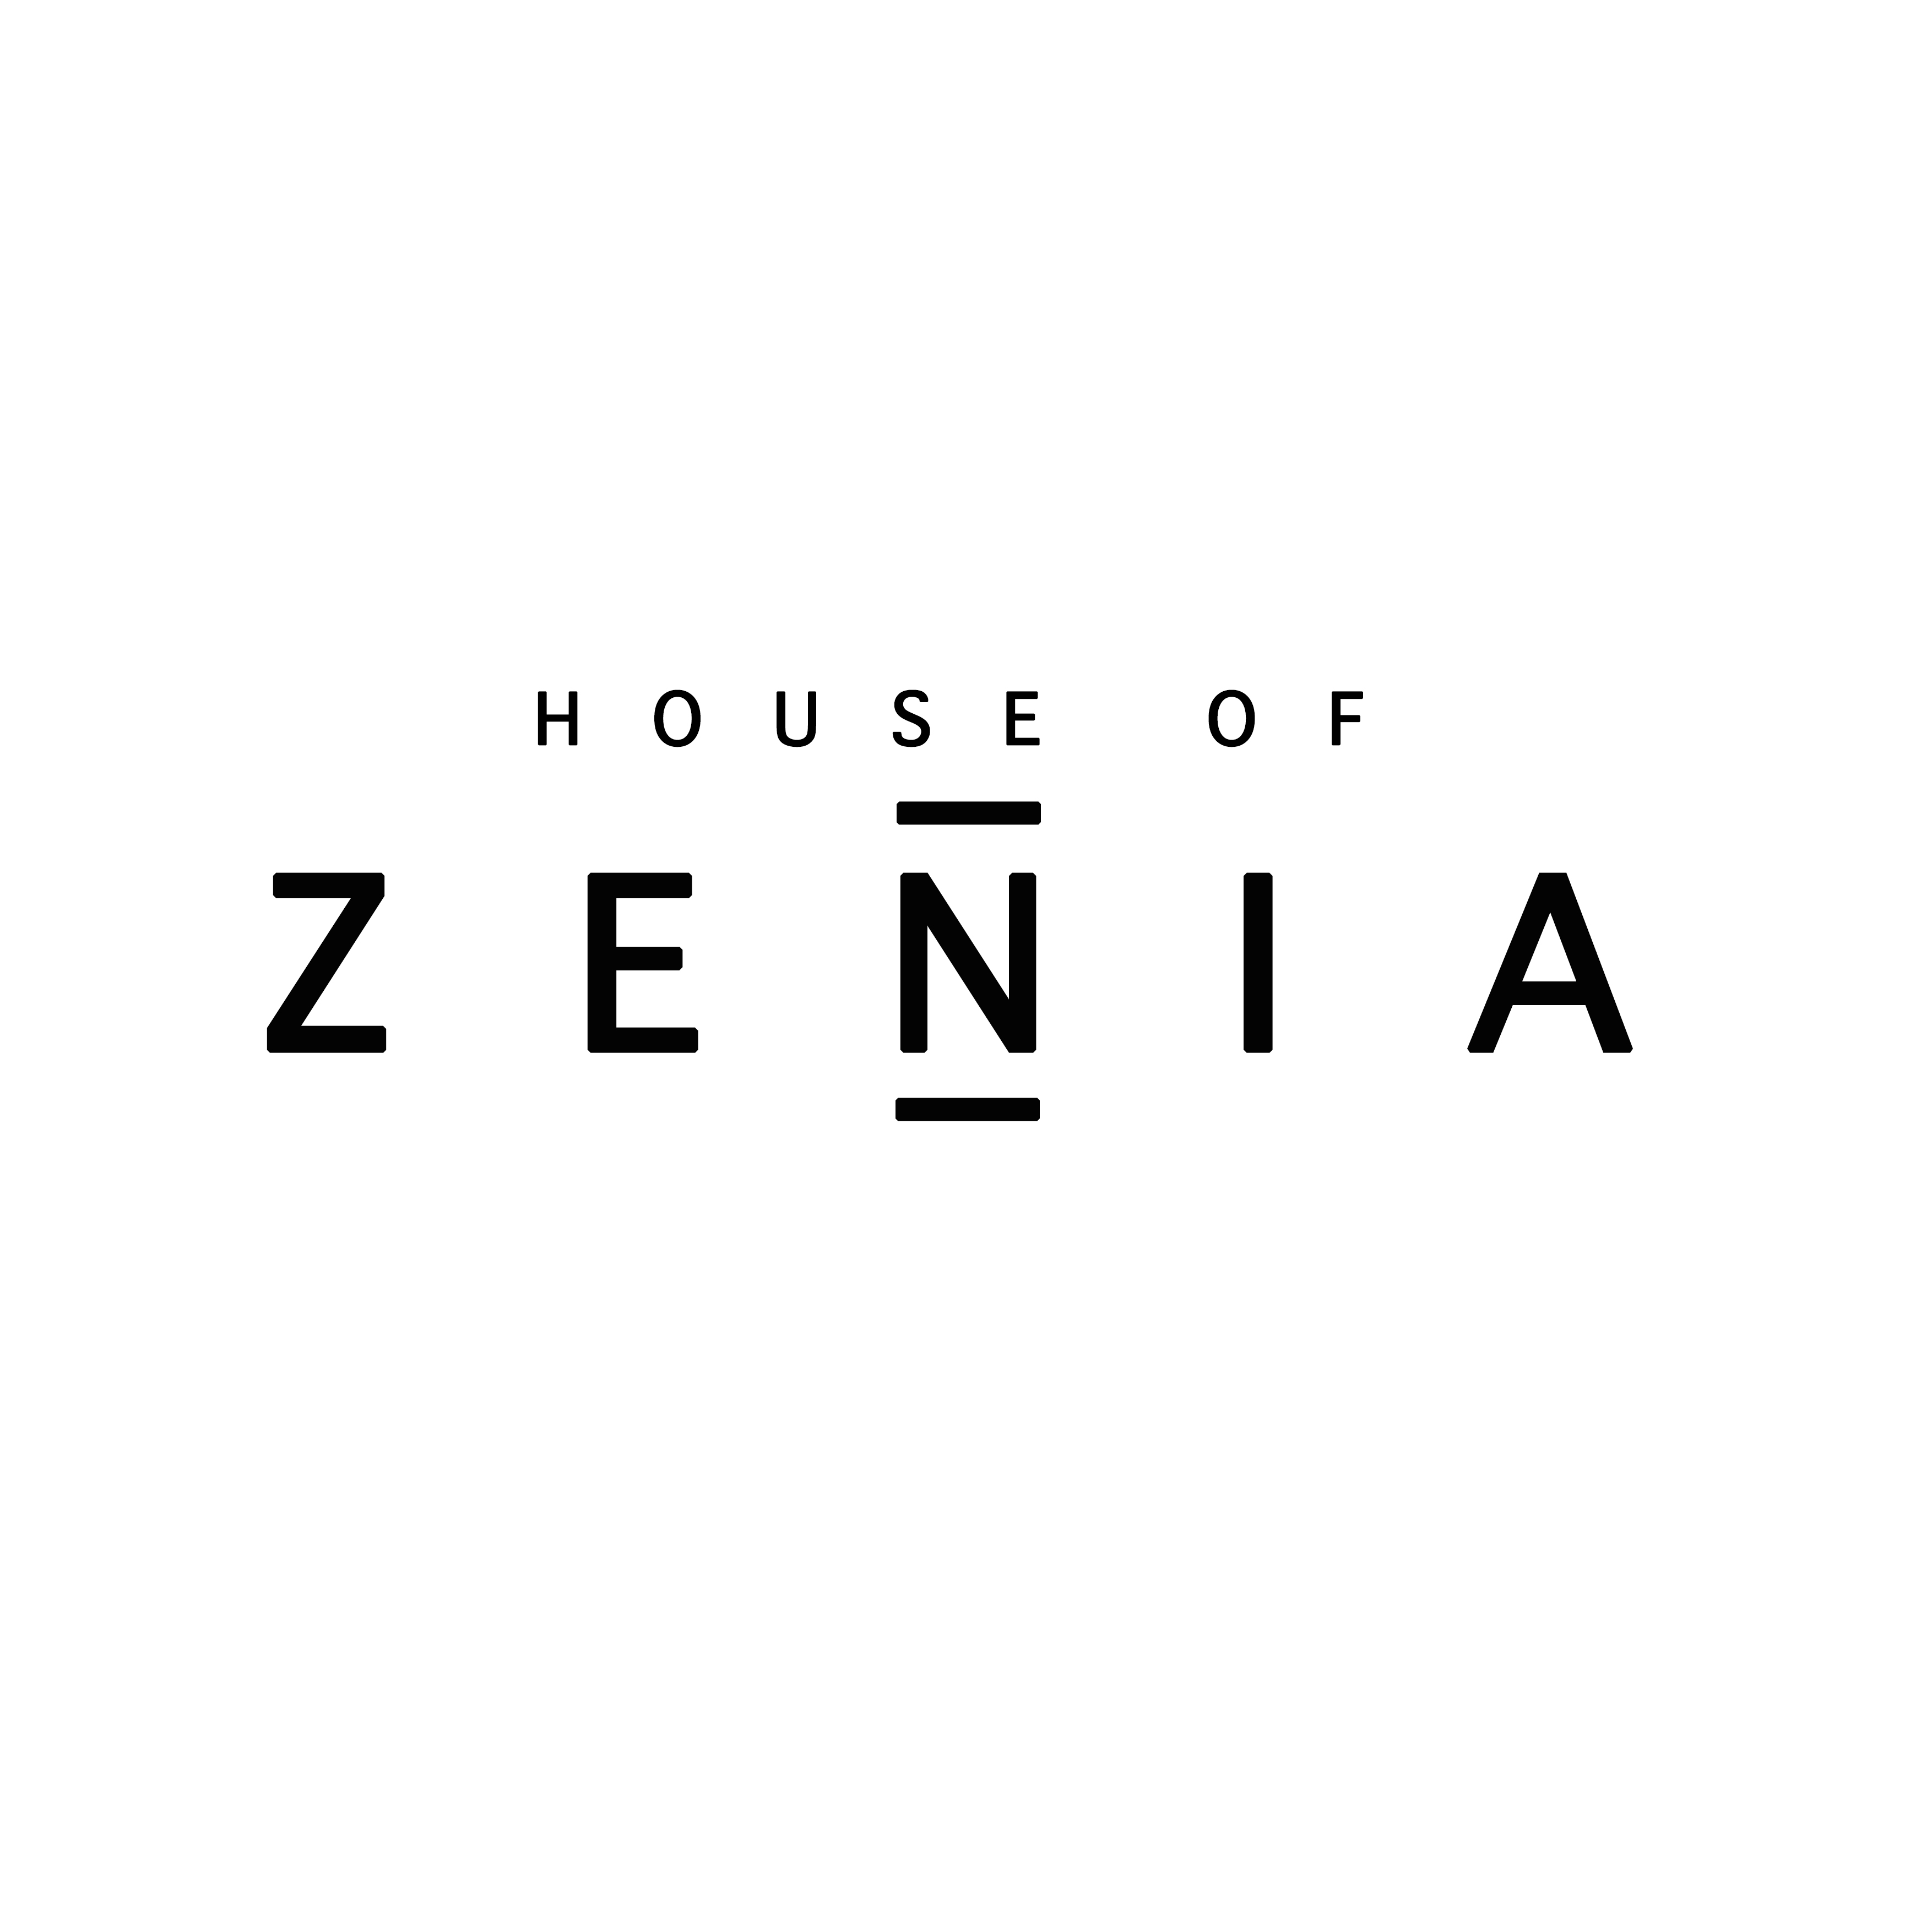 HOUSE OF ZENIA